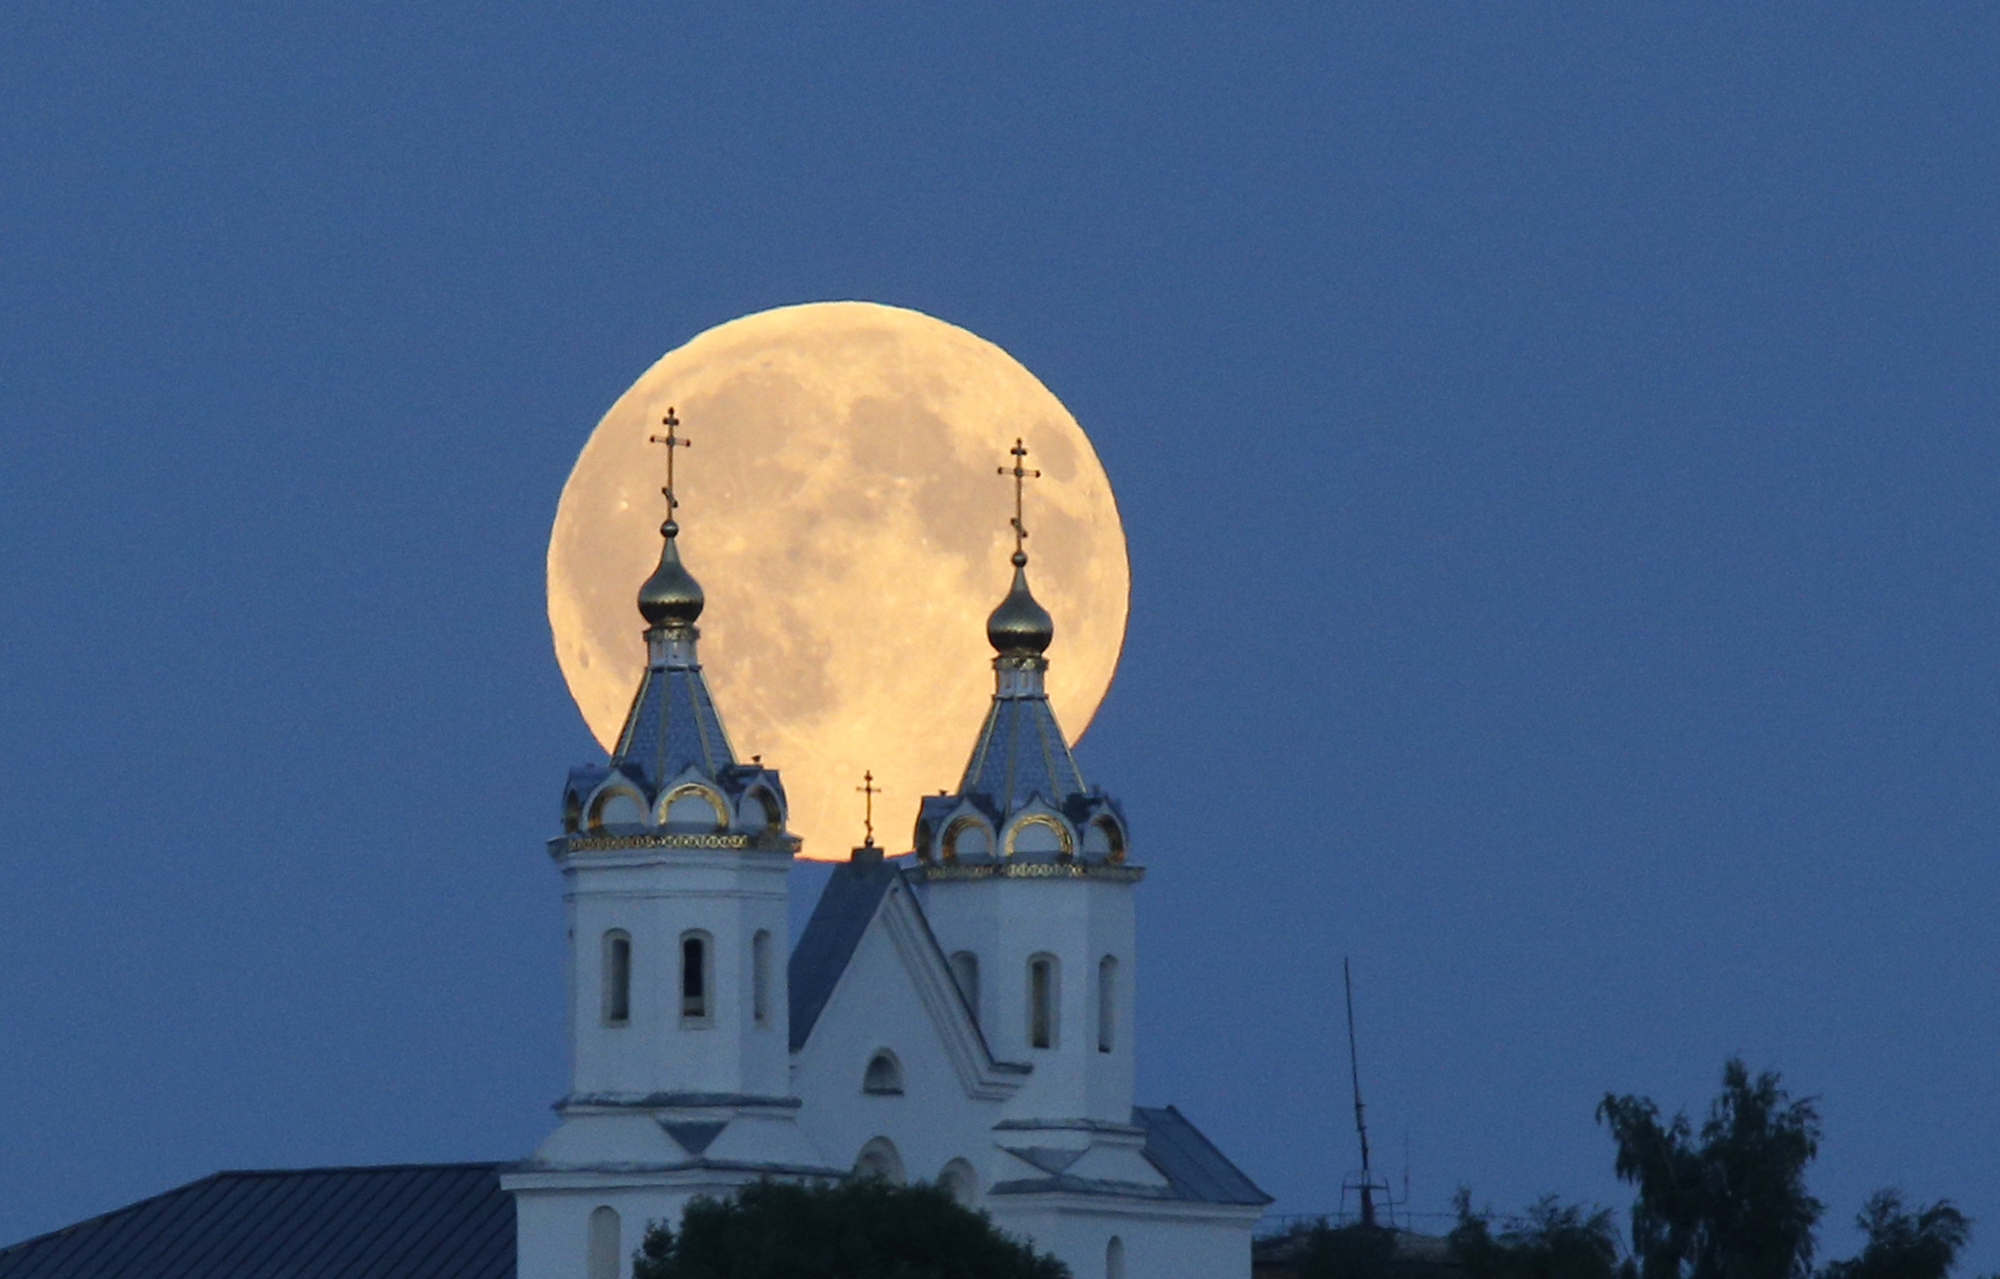 Super moon rises, Lewisberry, Pa., wins Little League title, cleansing sins in India|Aug. 29